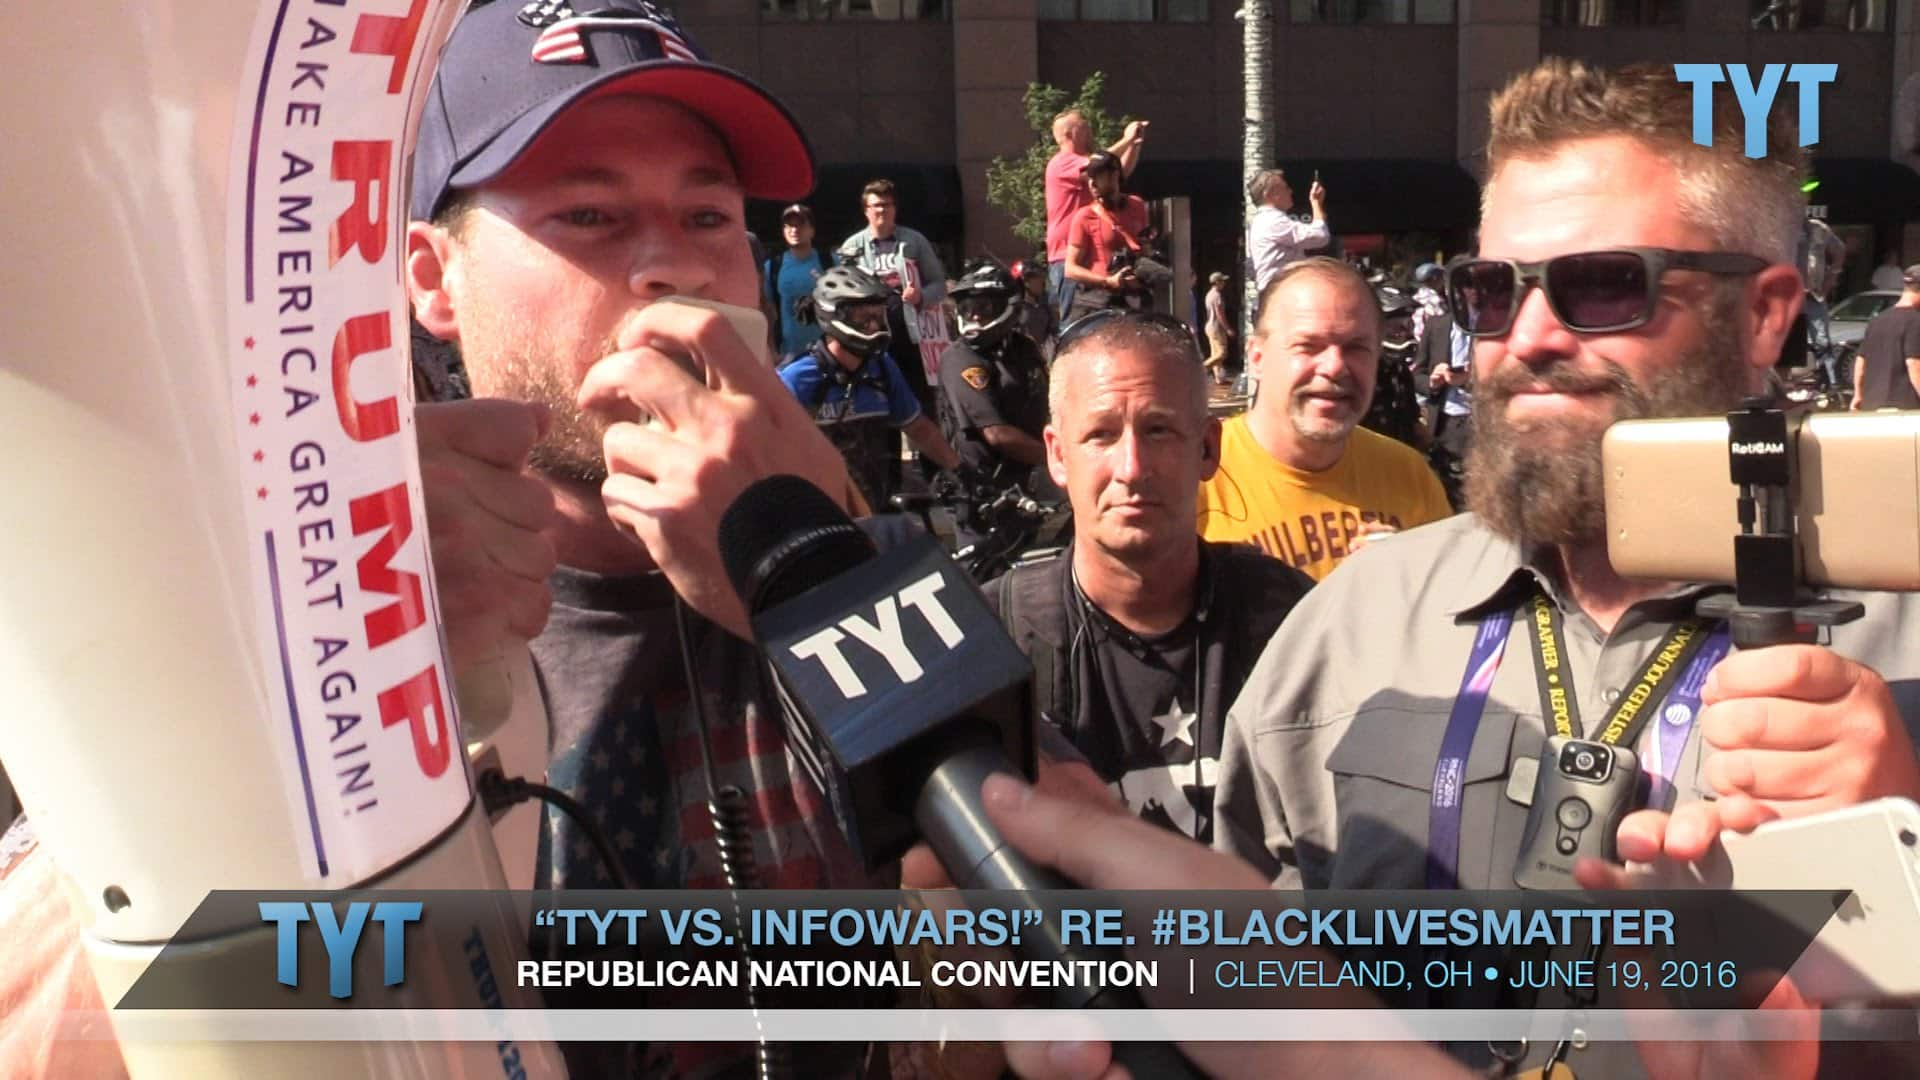 TYT vs. InfoWars re. #BlackLivesMatter At RNC Convention 24